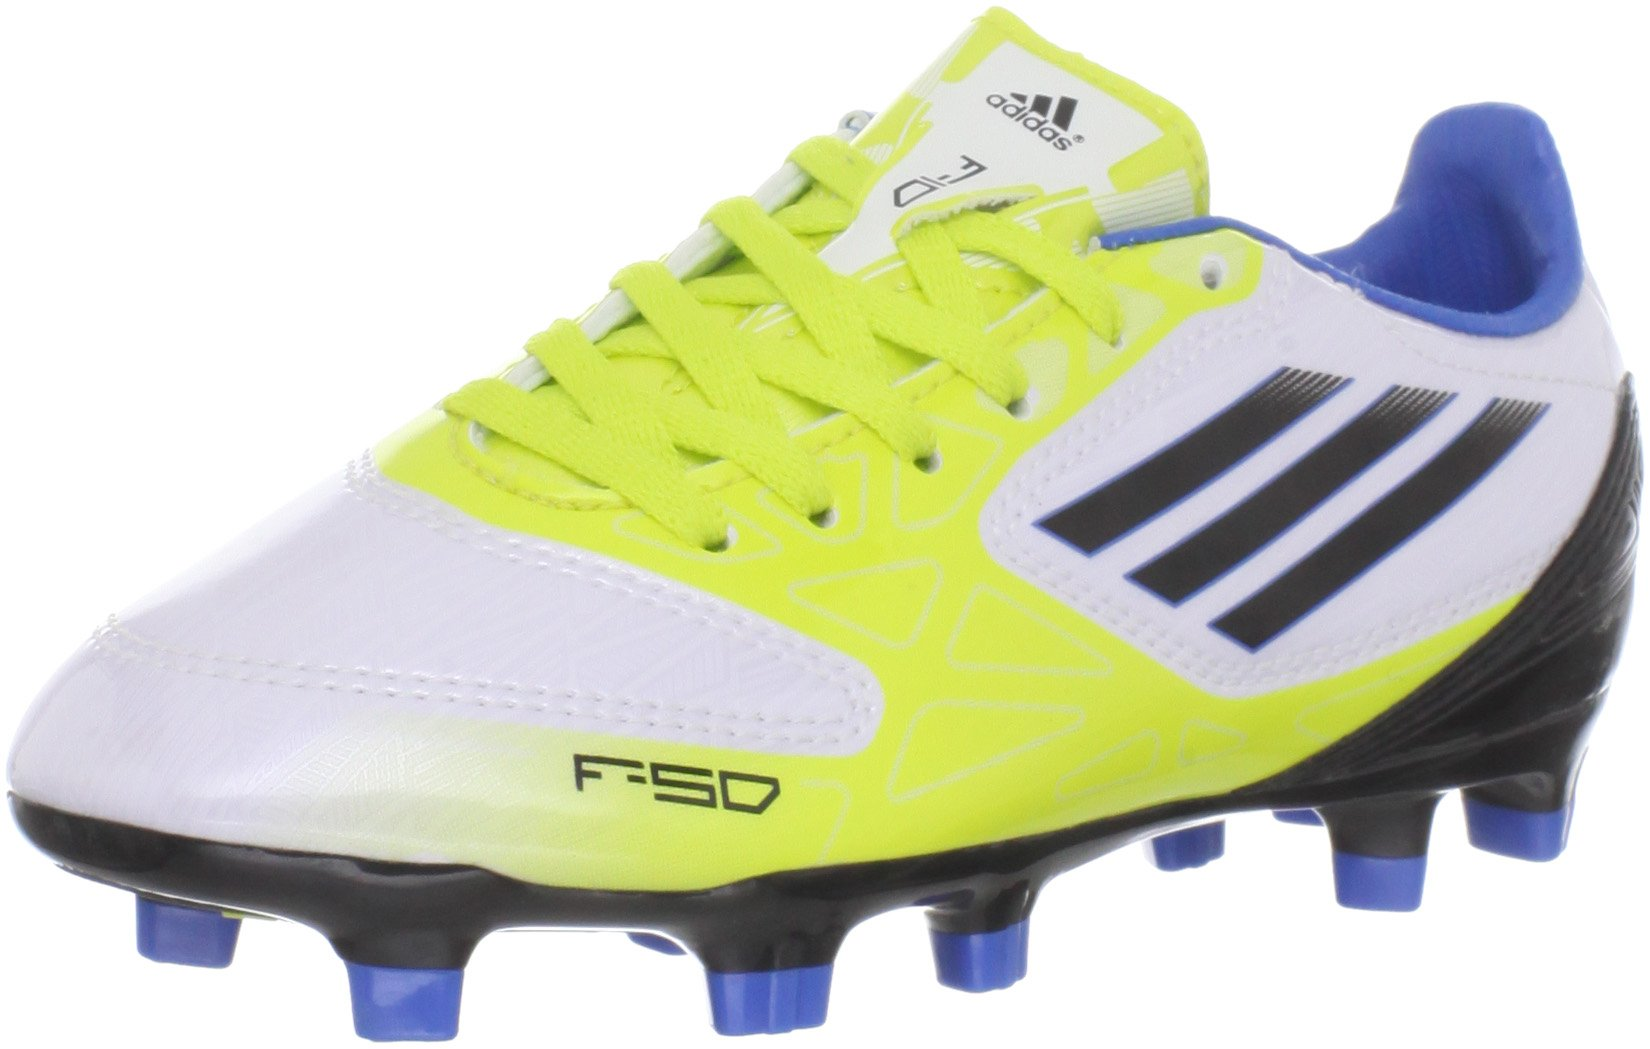 d8b48b43fd78d adidas F10 TRX FG Soccer Cleat (Little Kid/Big Kid),Running White/Black/Lab  Lime,2.5 M US Little Kid